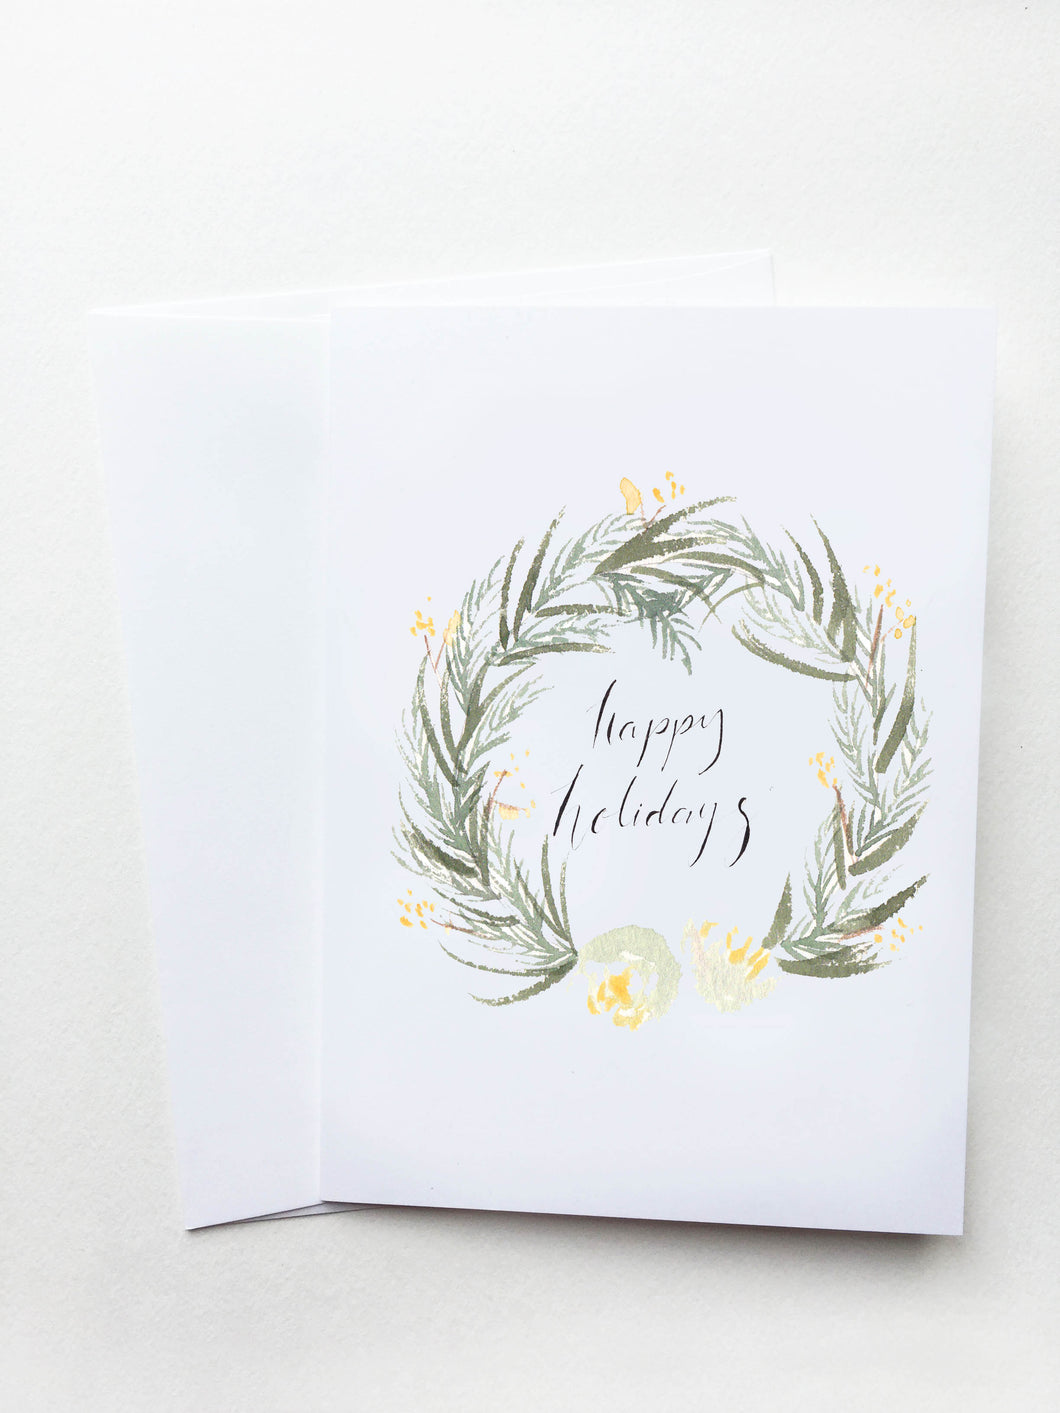 Happy Holidays White and Gold Floral Wreath Card